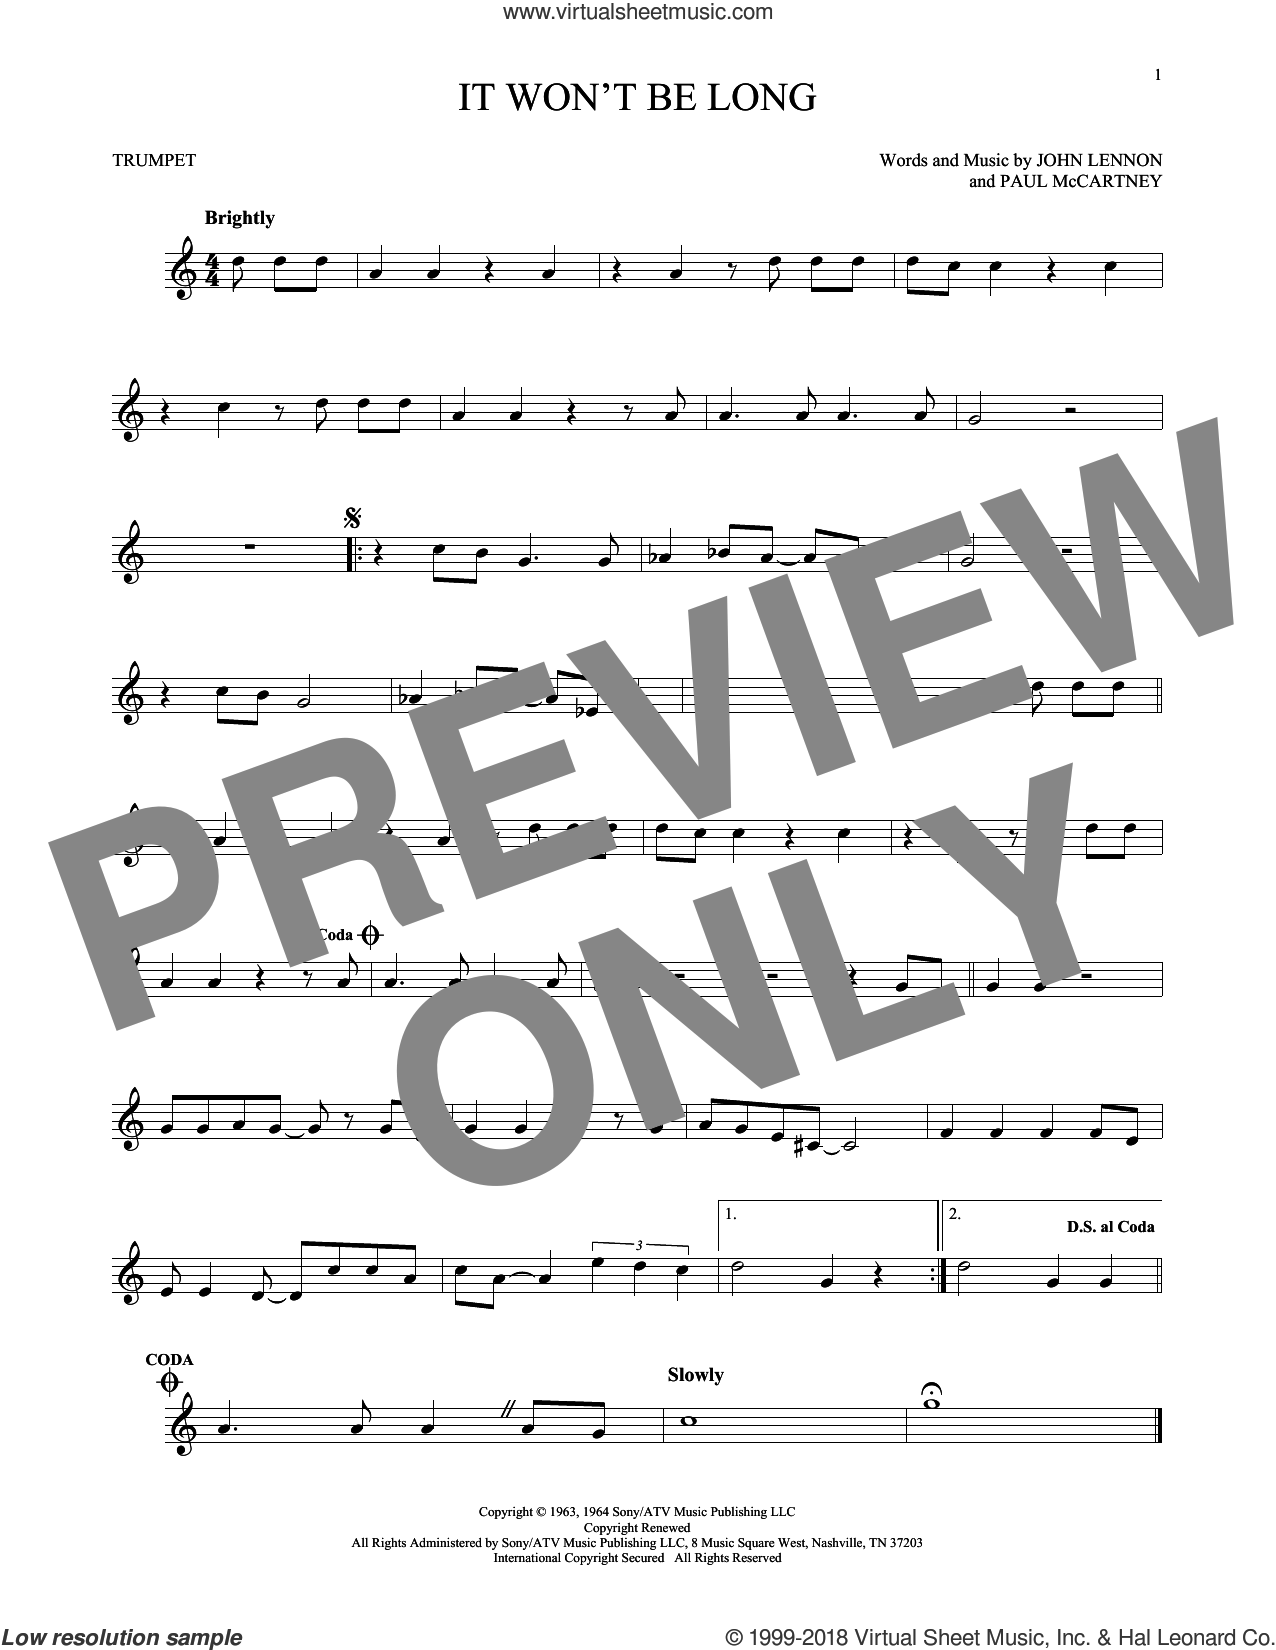 It Won't Be Long sheet music for trumpet solo by Paul McCartney